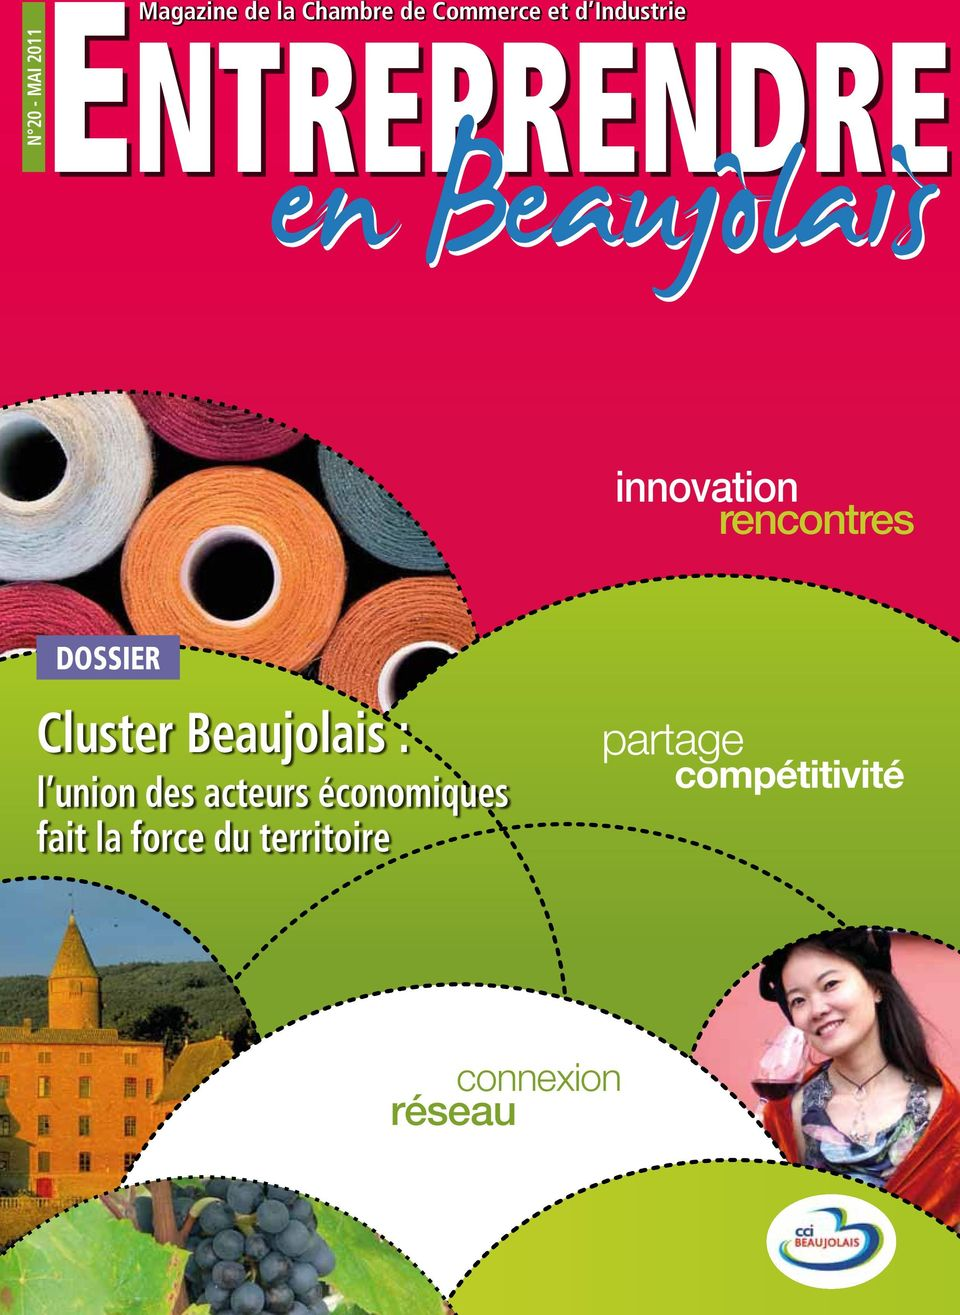 Beaujolais innovation rencontres DOSSIER Cluster Beaujolais : l union